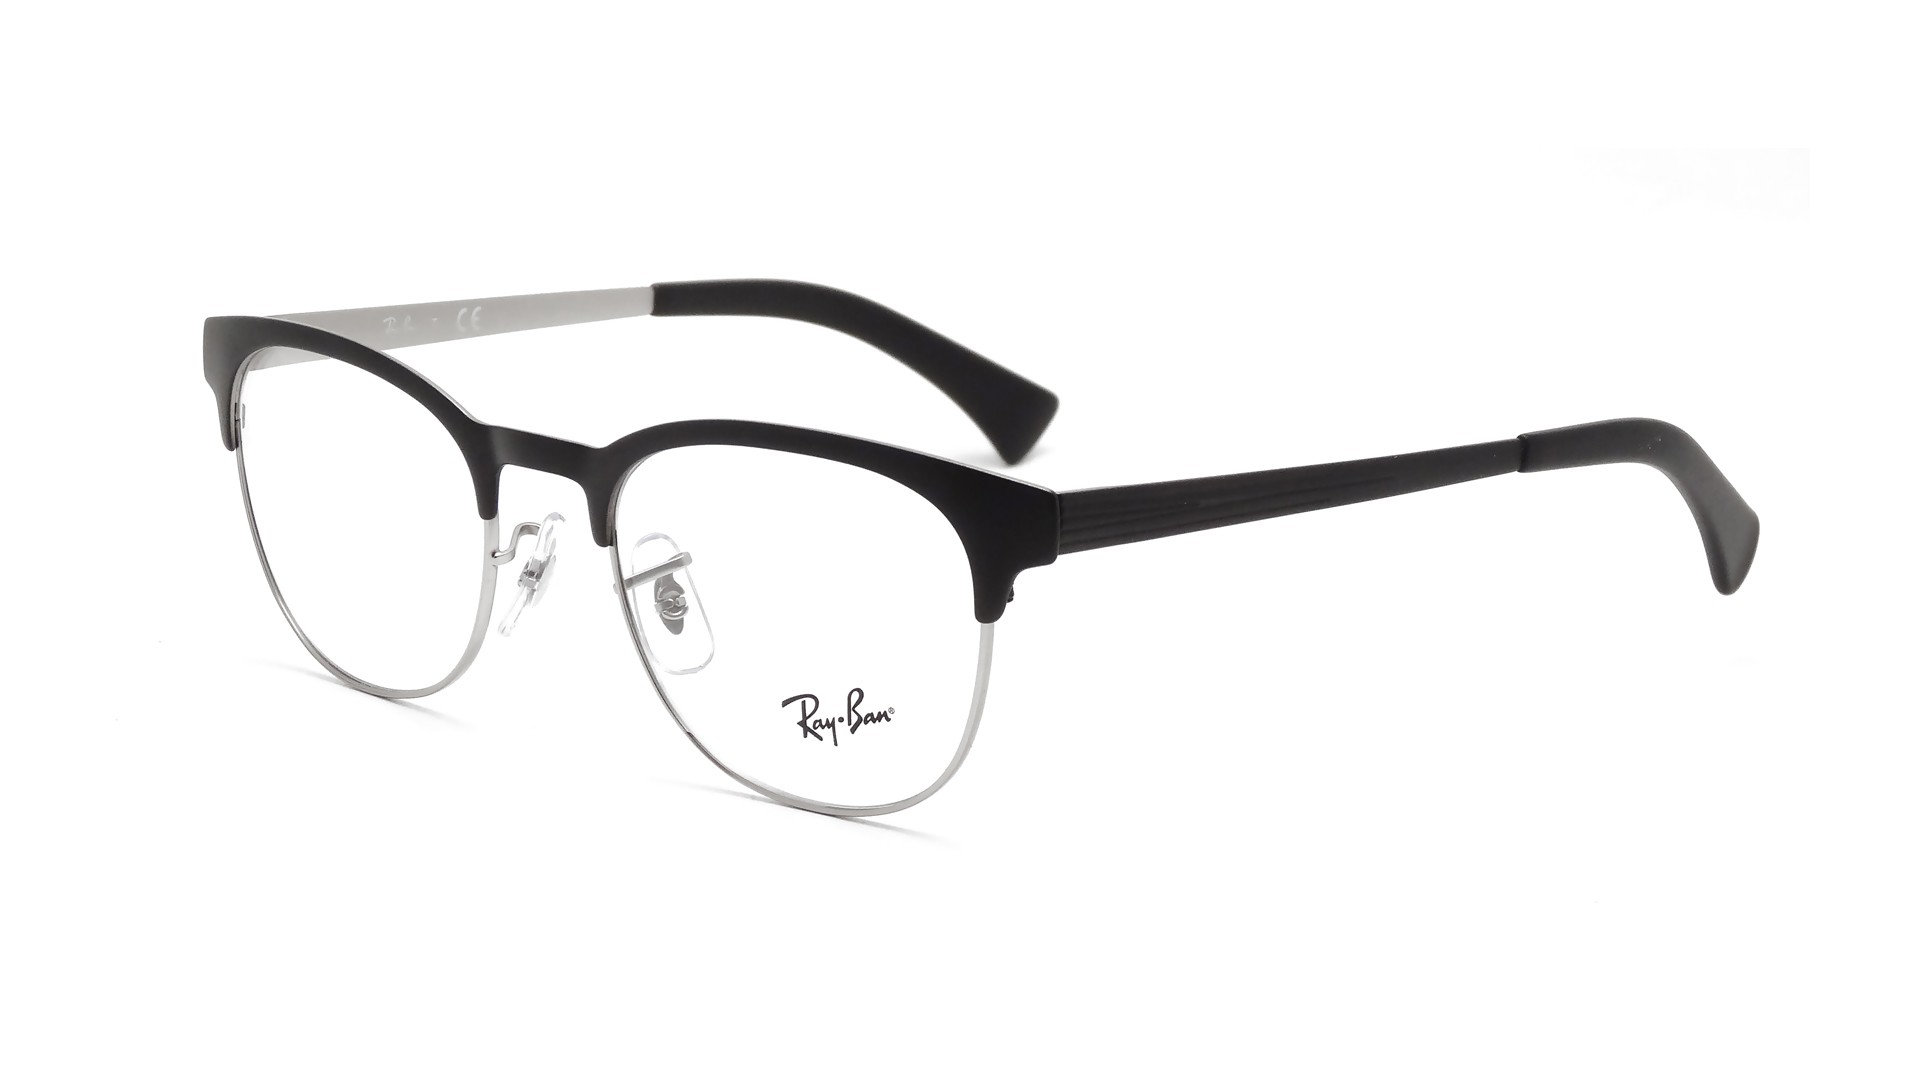 Ray Ban Clubmaster Lunettes Vue   United Nations System Chief ... bcdf2e33d90f